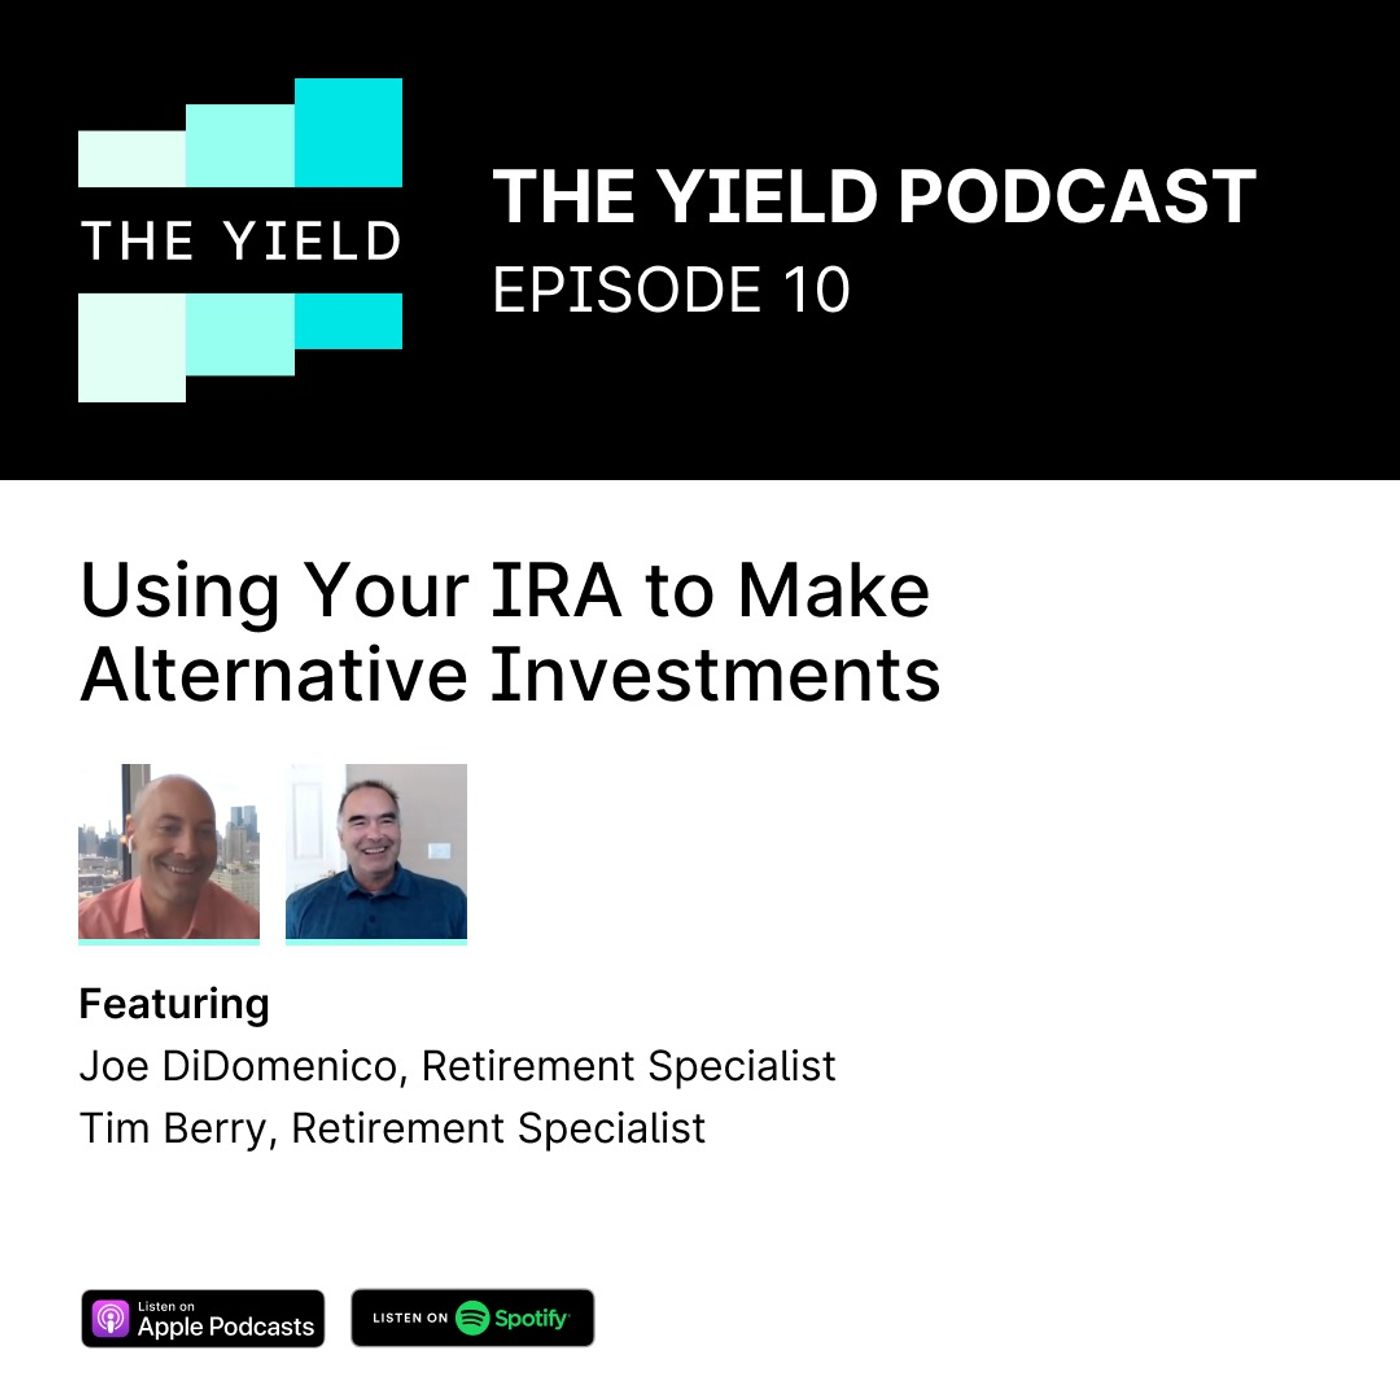 Using Your IRA to Make Alternative Investments